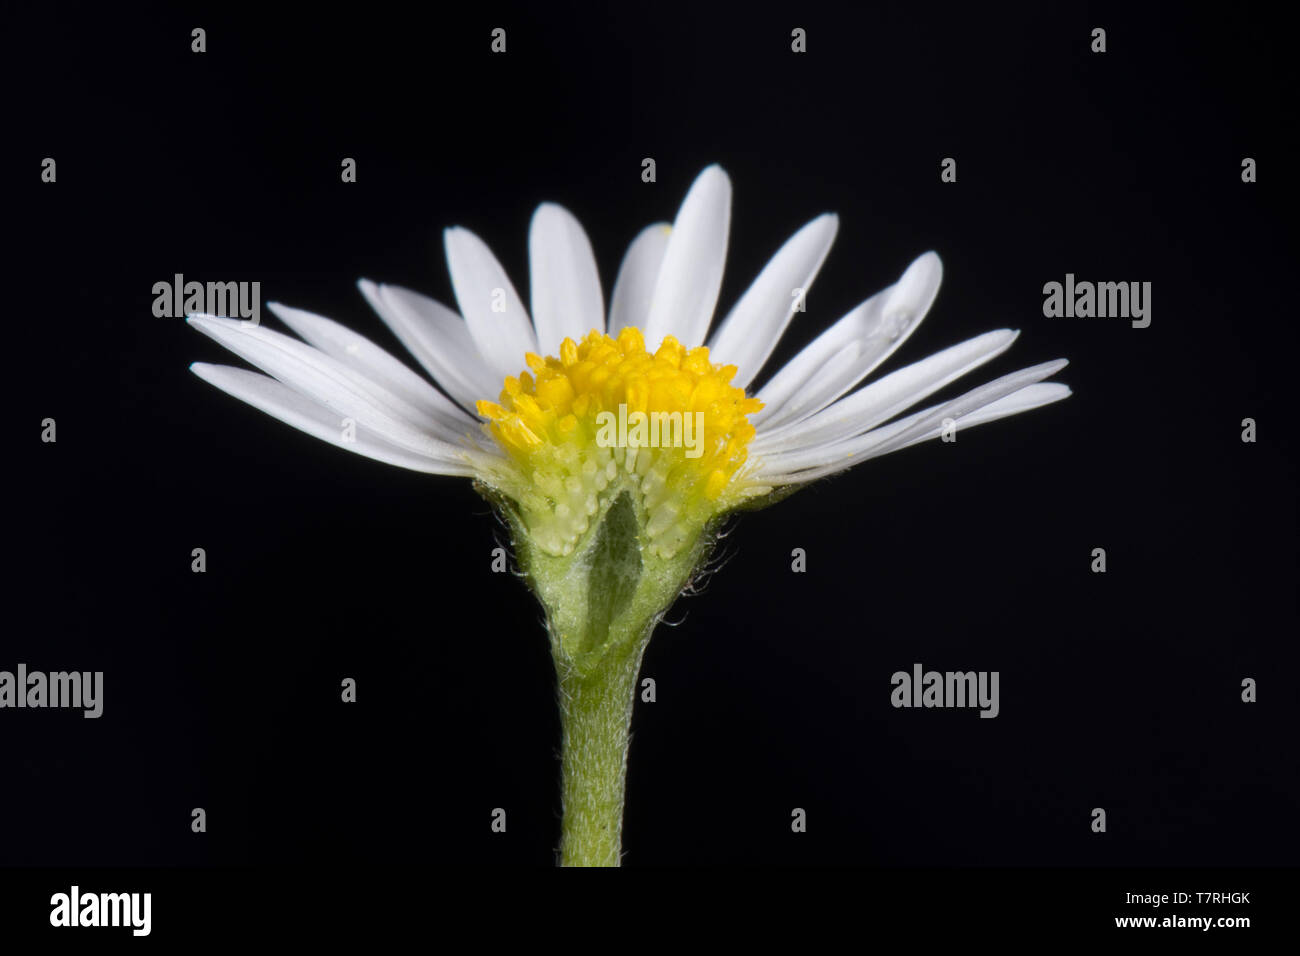 White ray and yellow disk florets (flowers) of a daisy (Bellis perennis) a typical composite flower structure (Asteraceae) - Stock Image